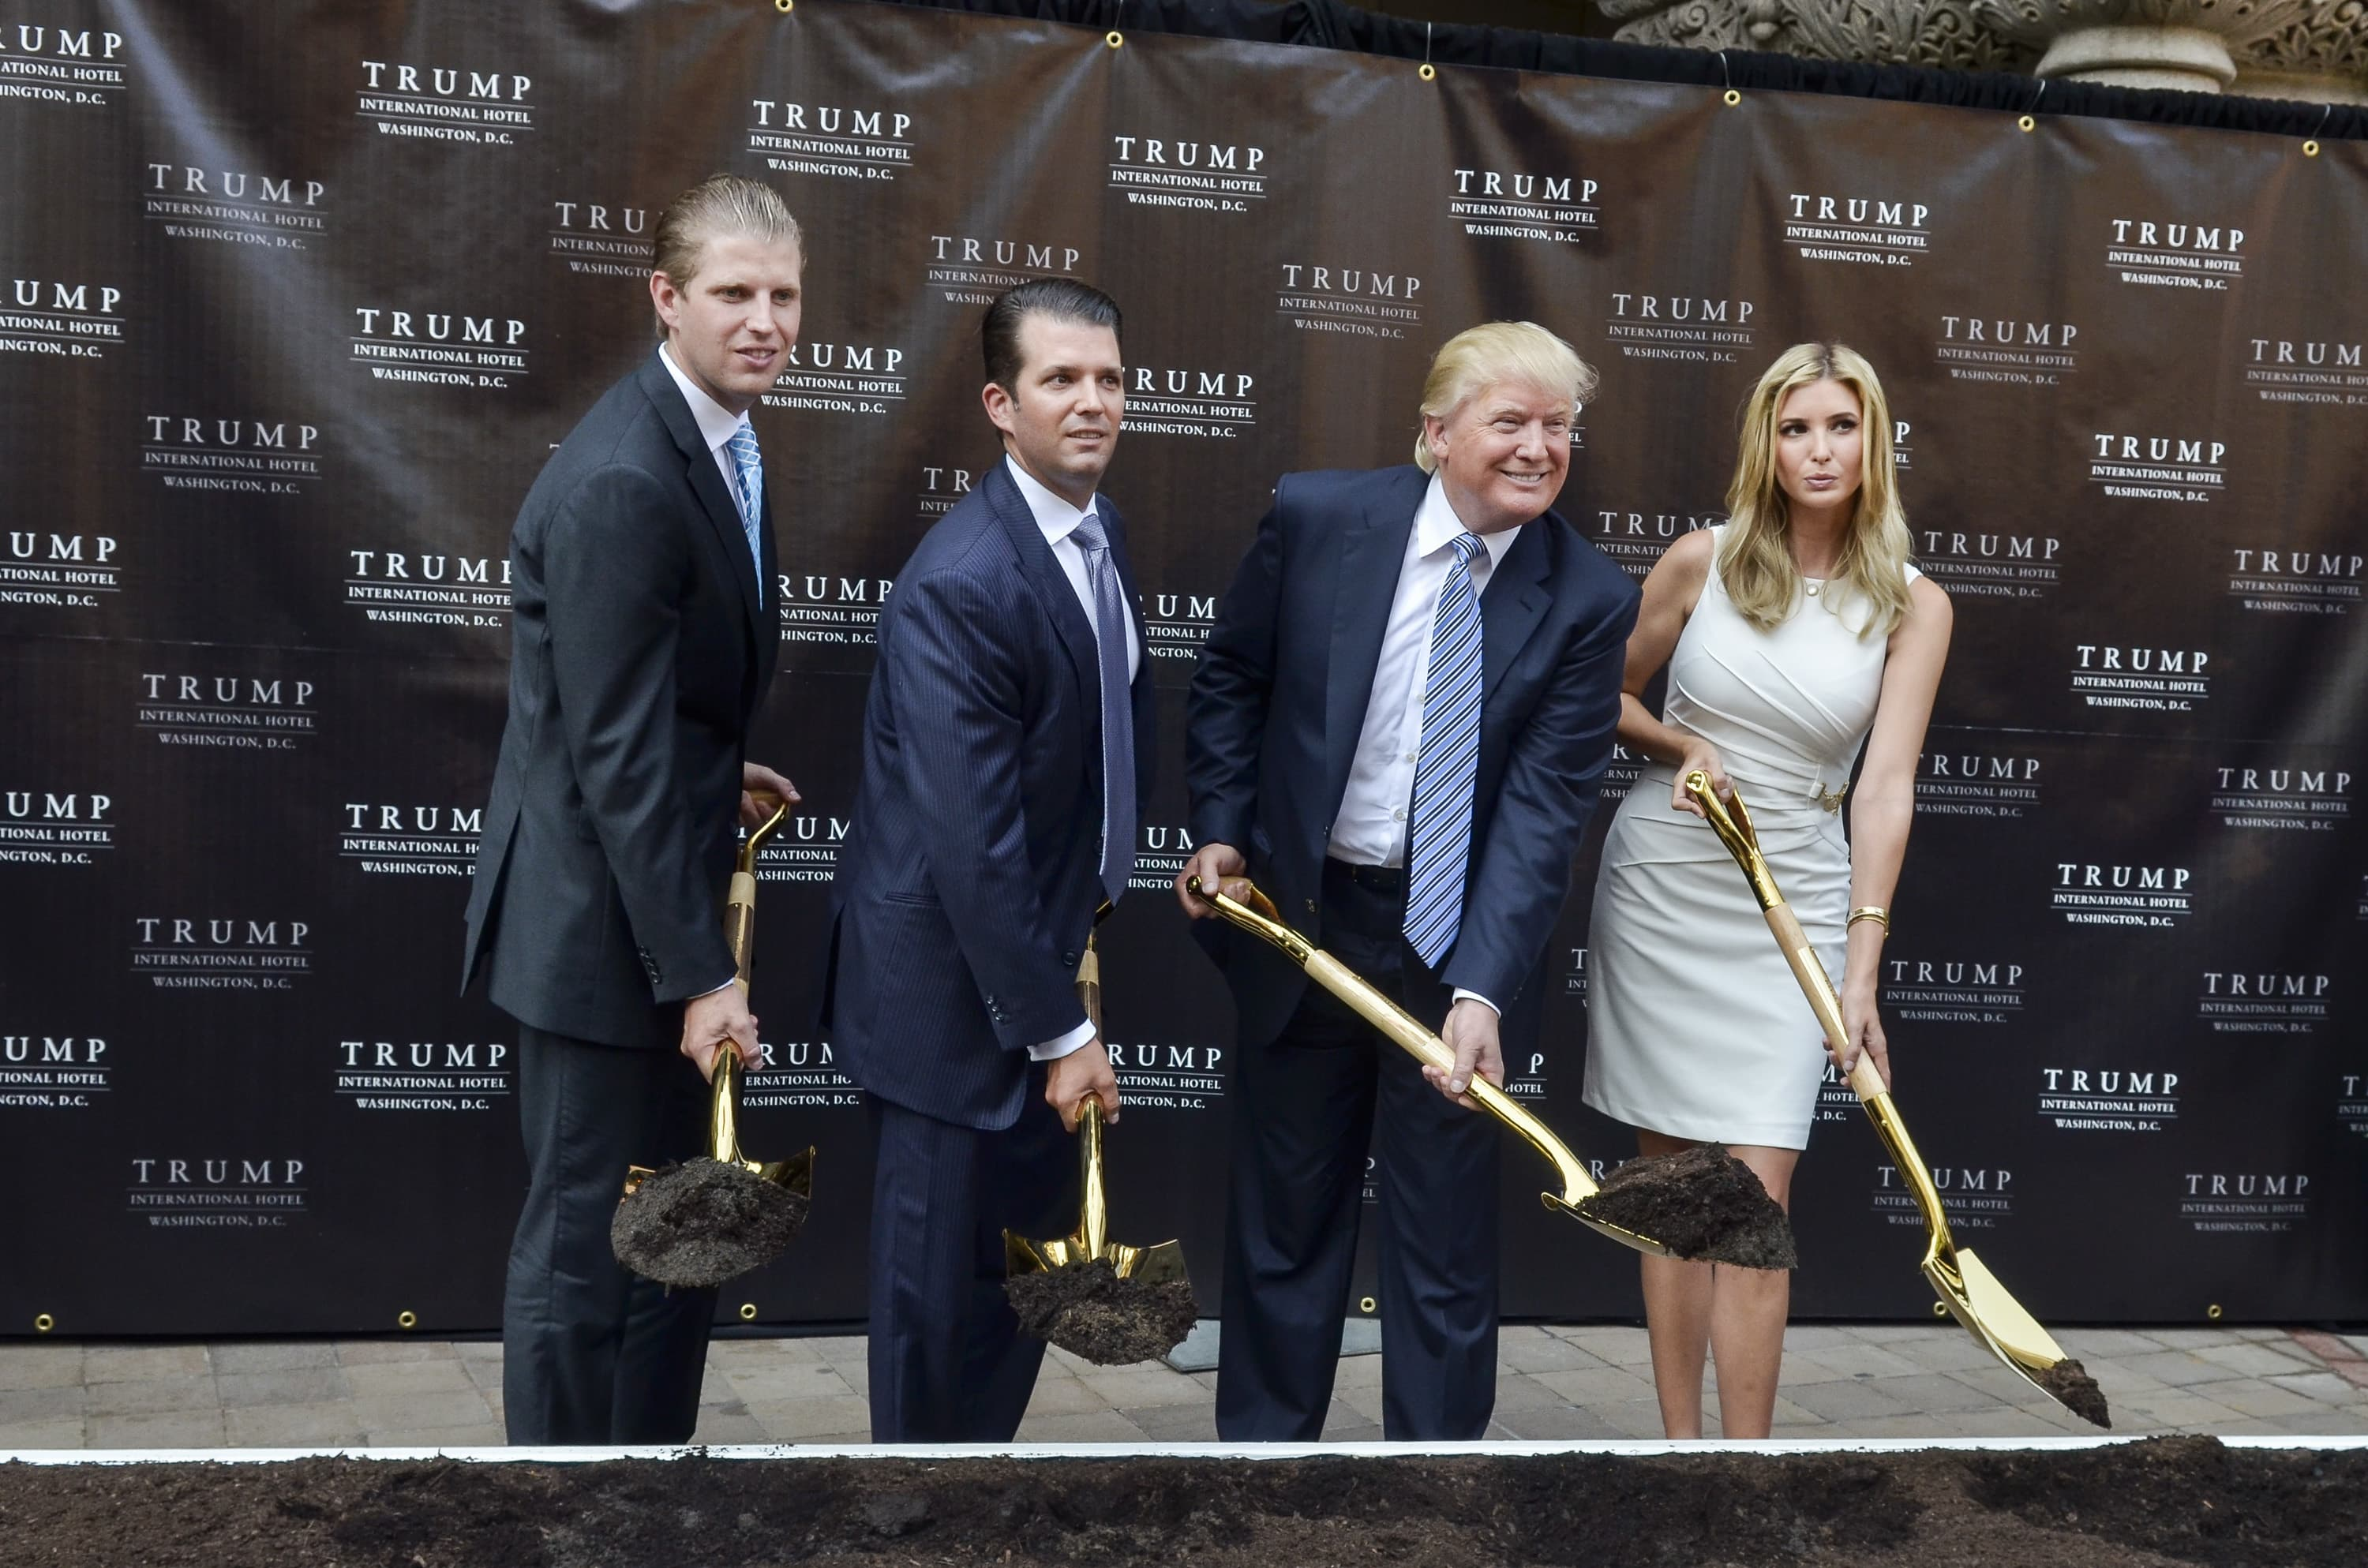 Judge rules against Trump family over bank records